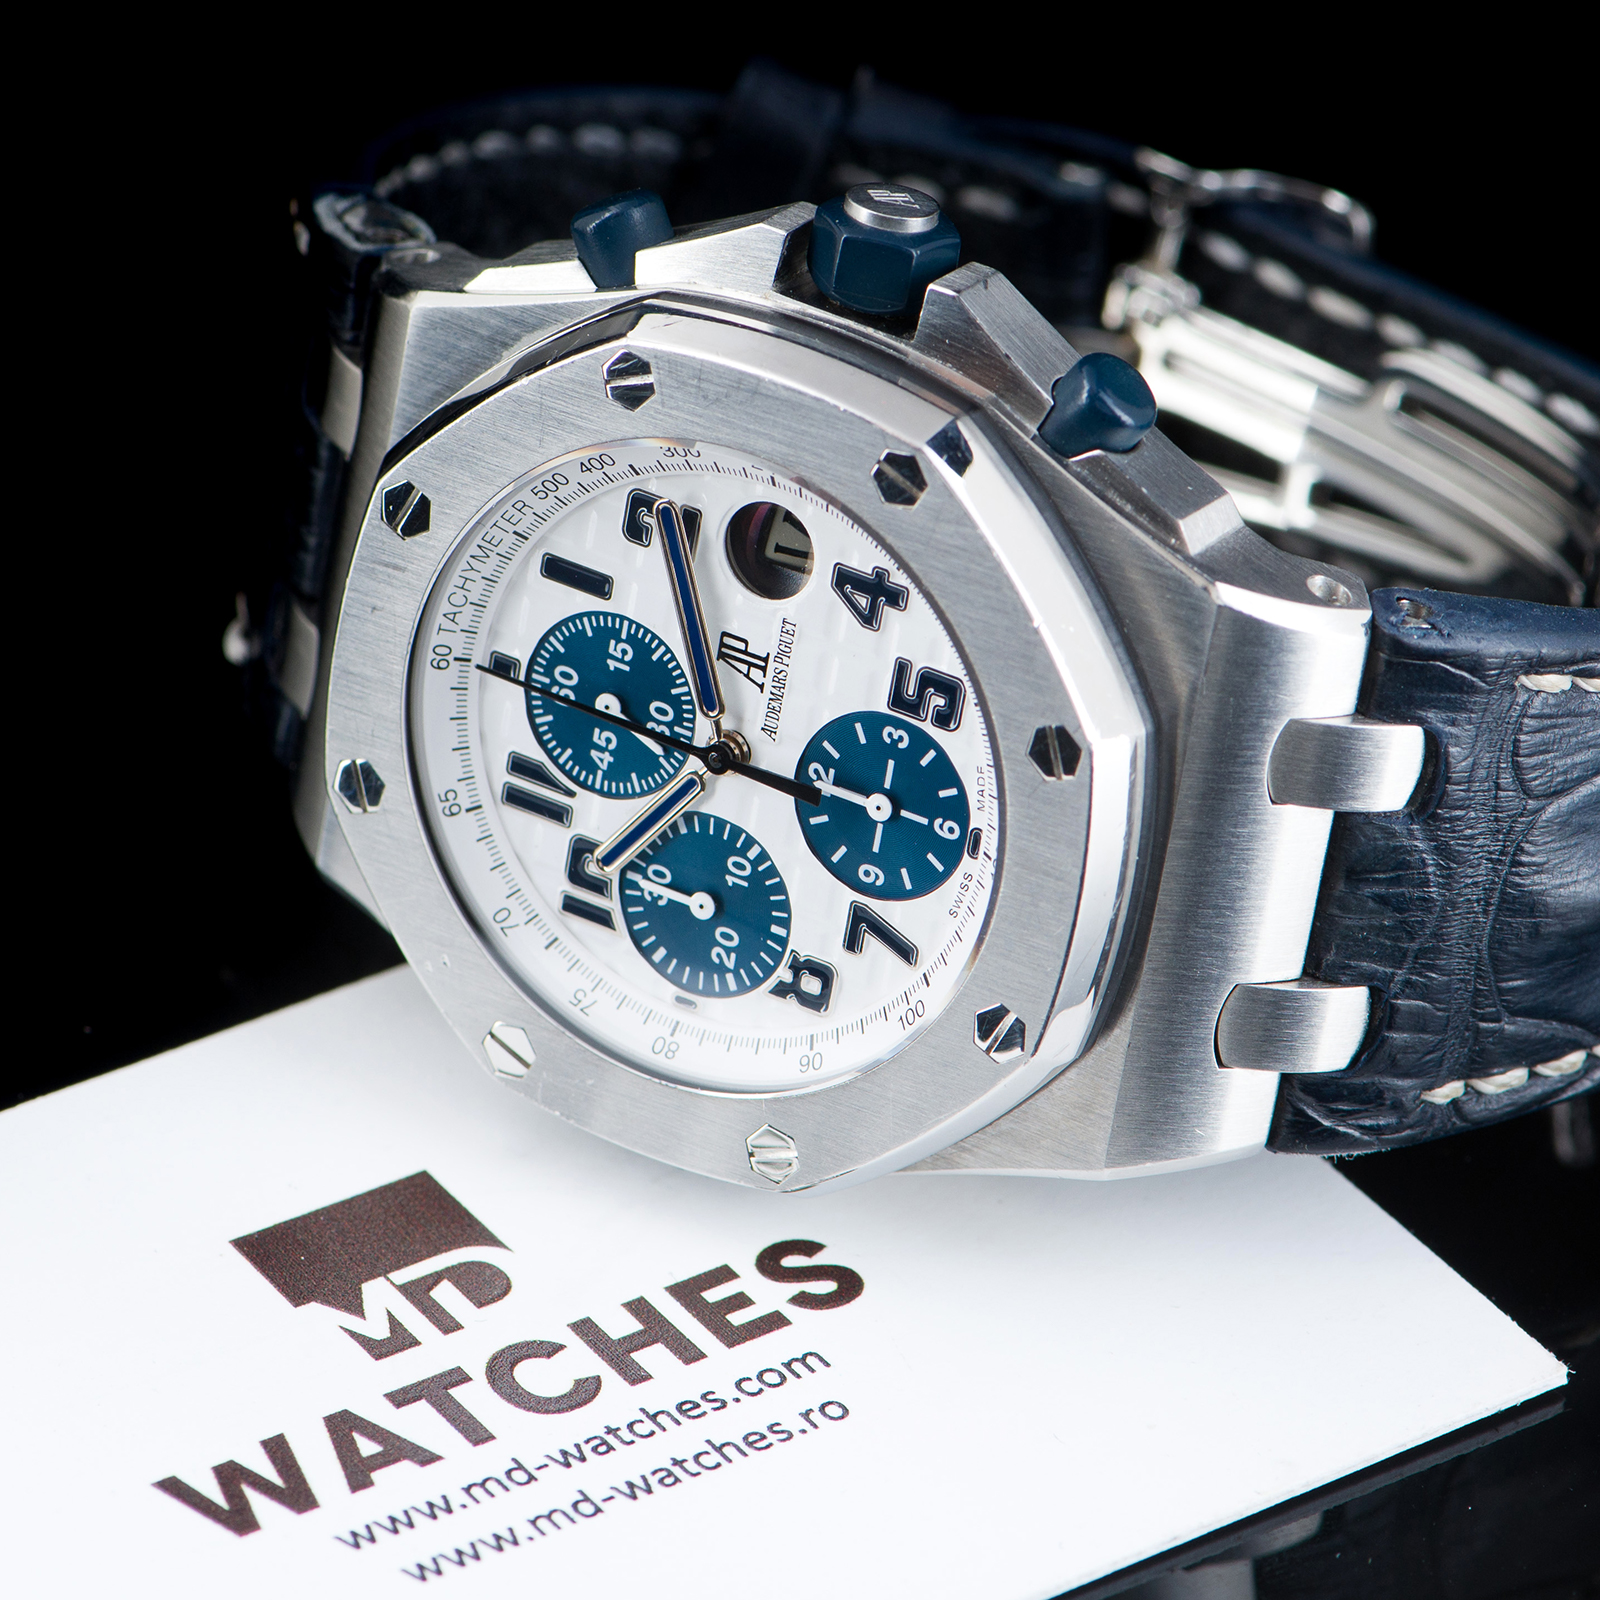 Audemars piguet royal oak offshore chronograph navy ref 26170st oo 42mm md watches for Ap royal oak offshore chronograph